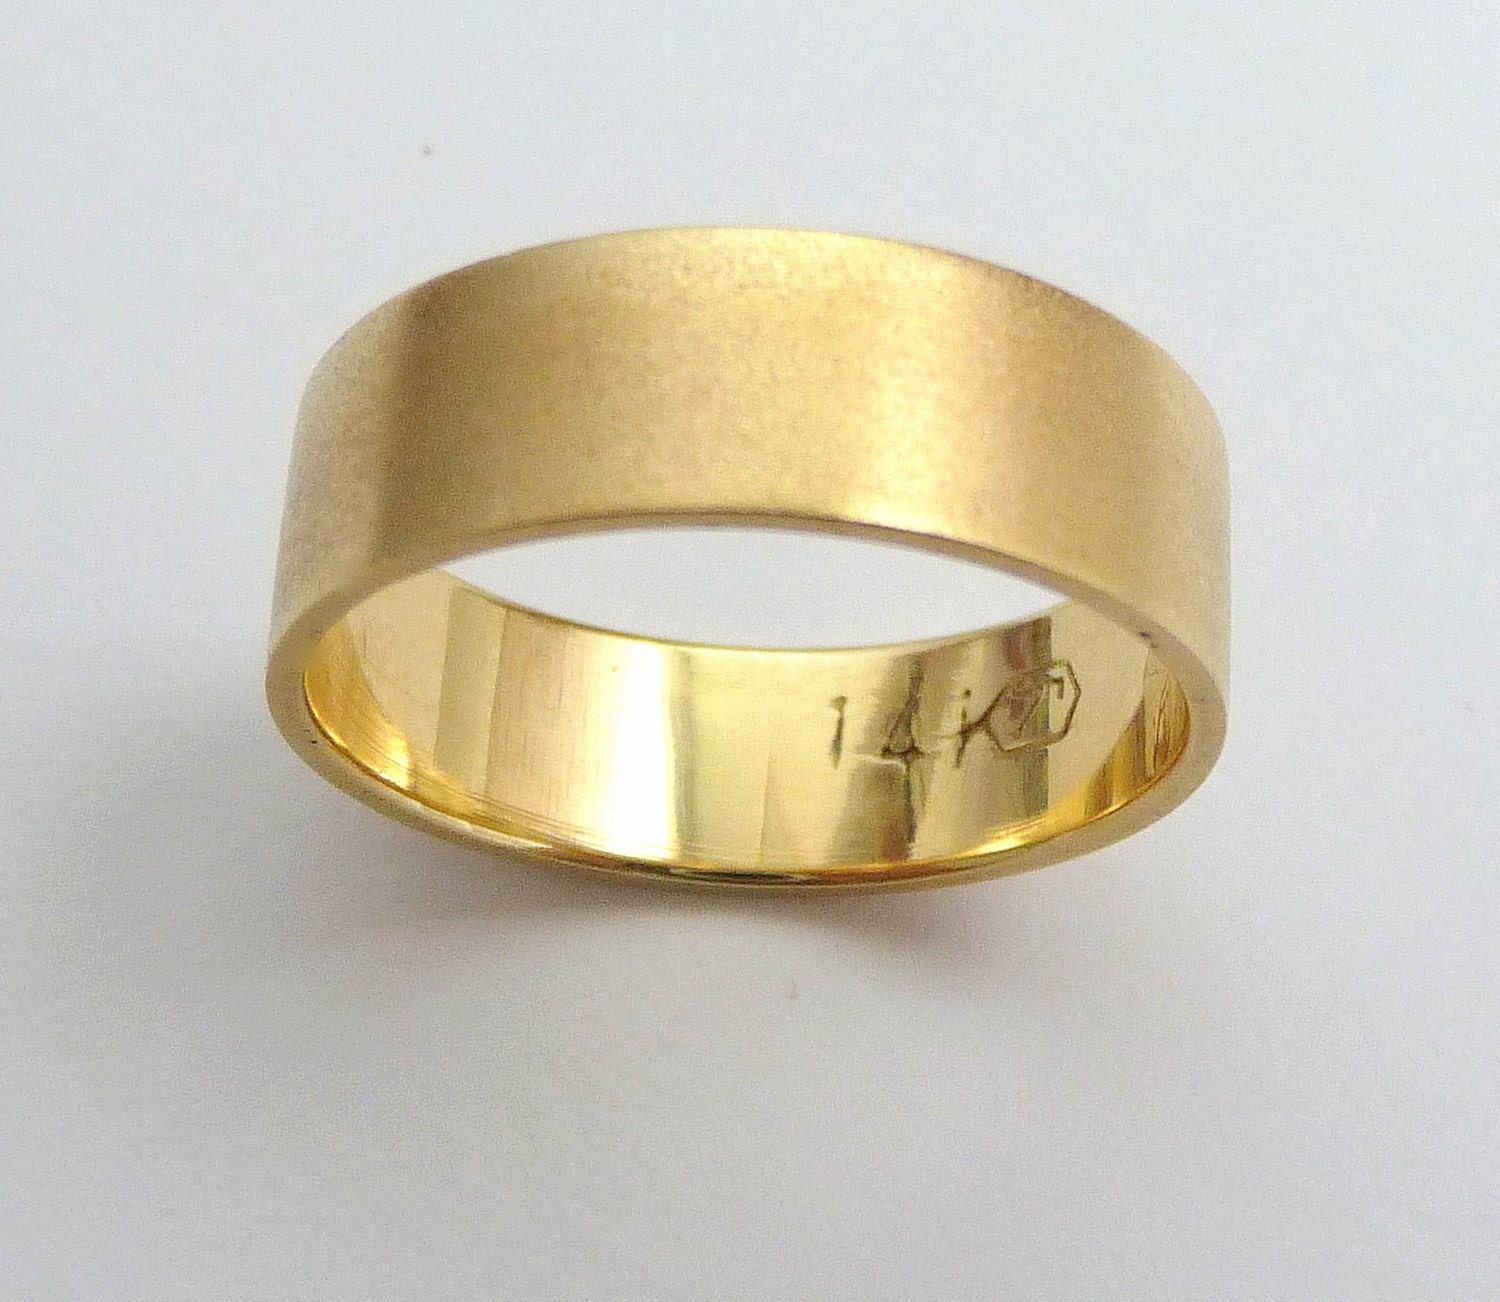 Gold Wedding Band Men Wedding Ring Flat With Sandblast Finish